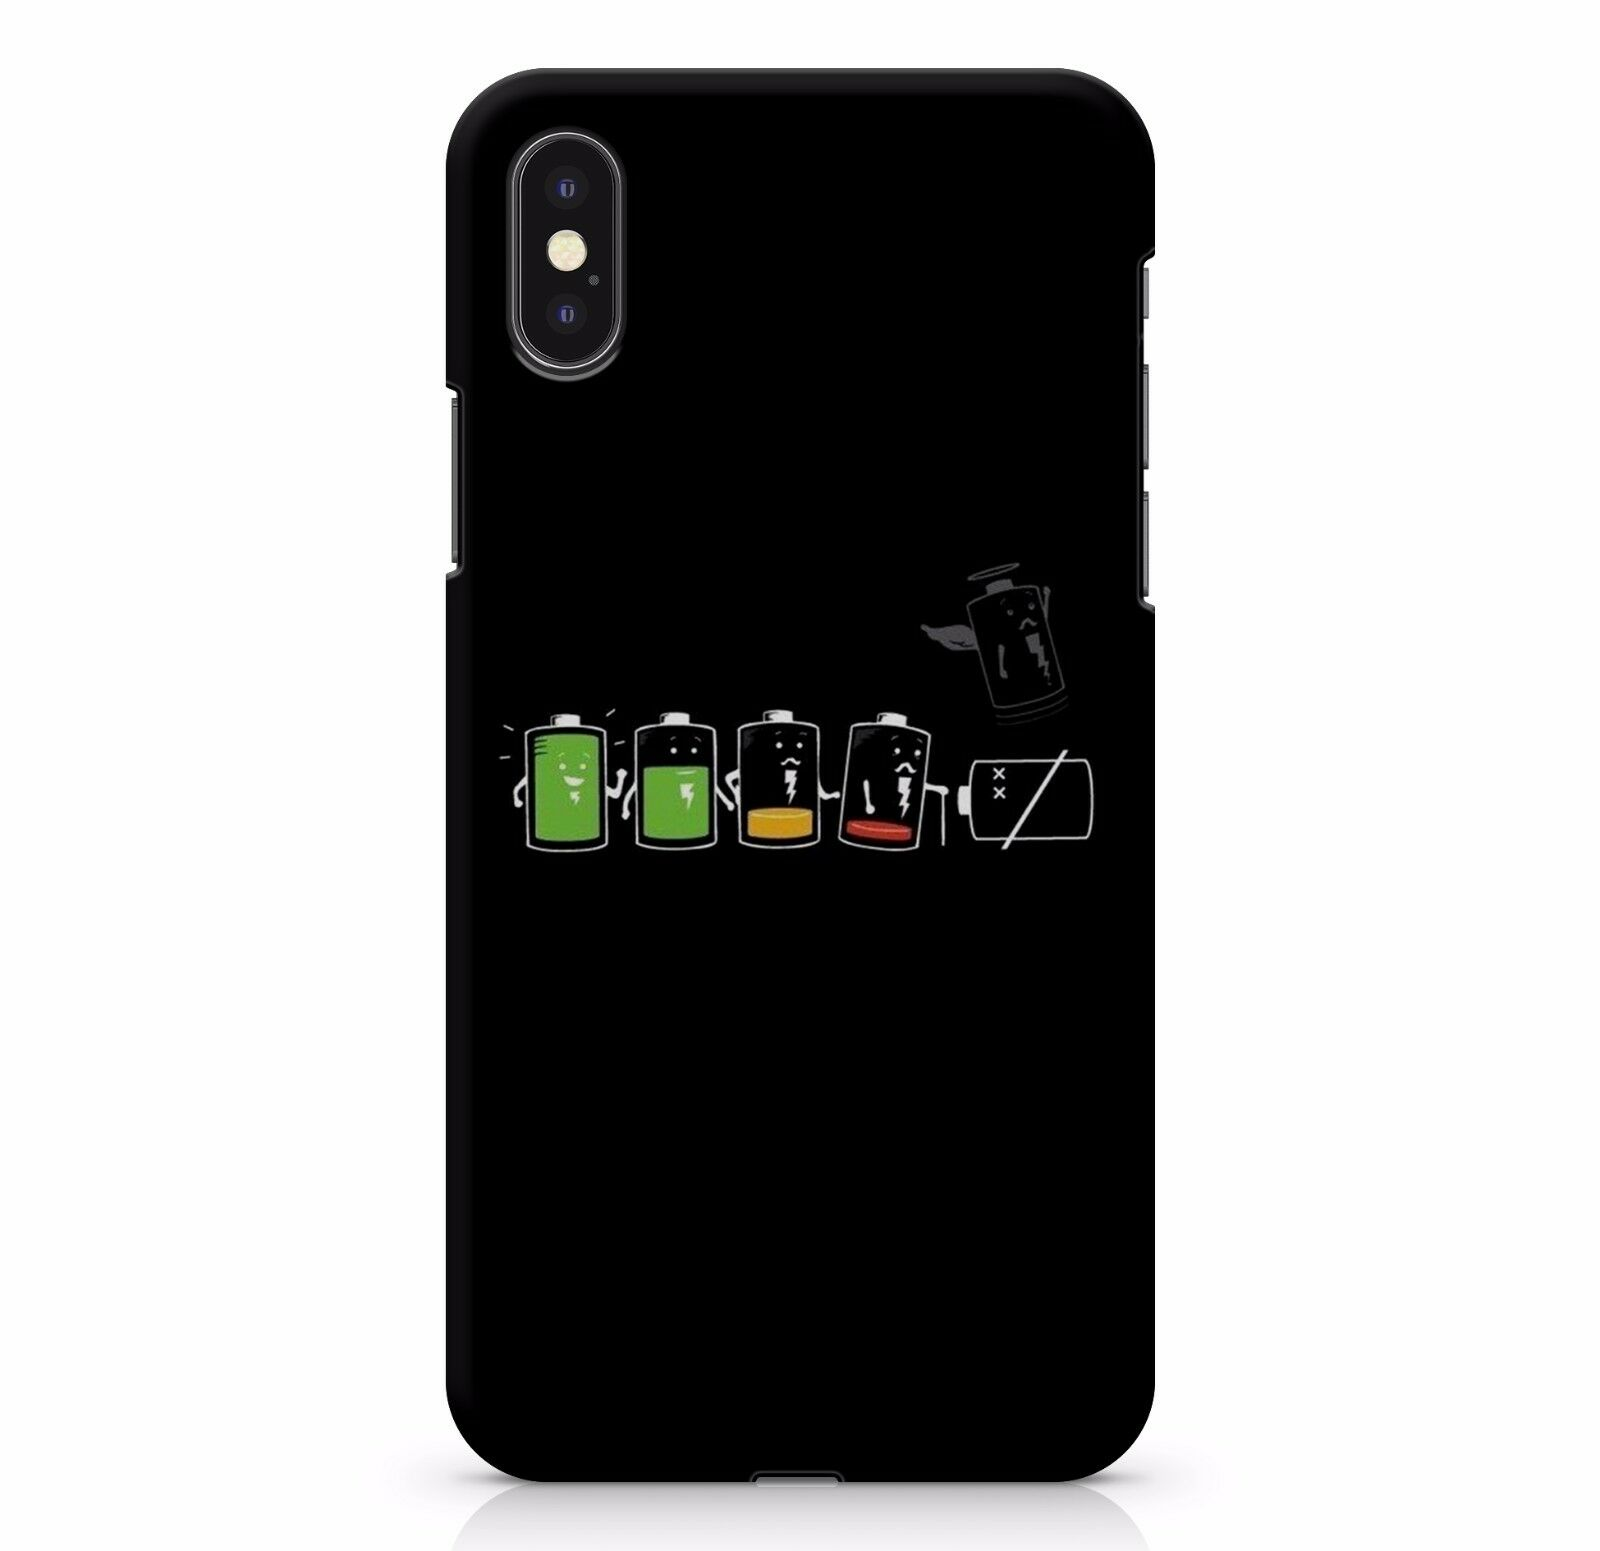 Funny Dead Battery Died Symbols Meme Phone Charger Charging Phone